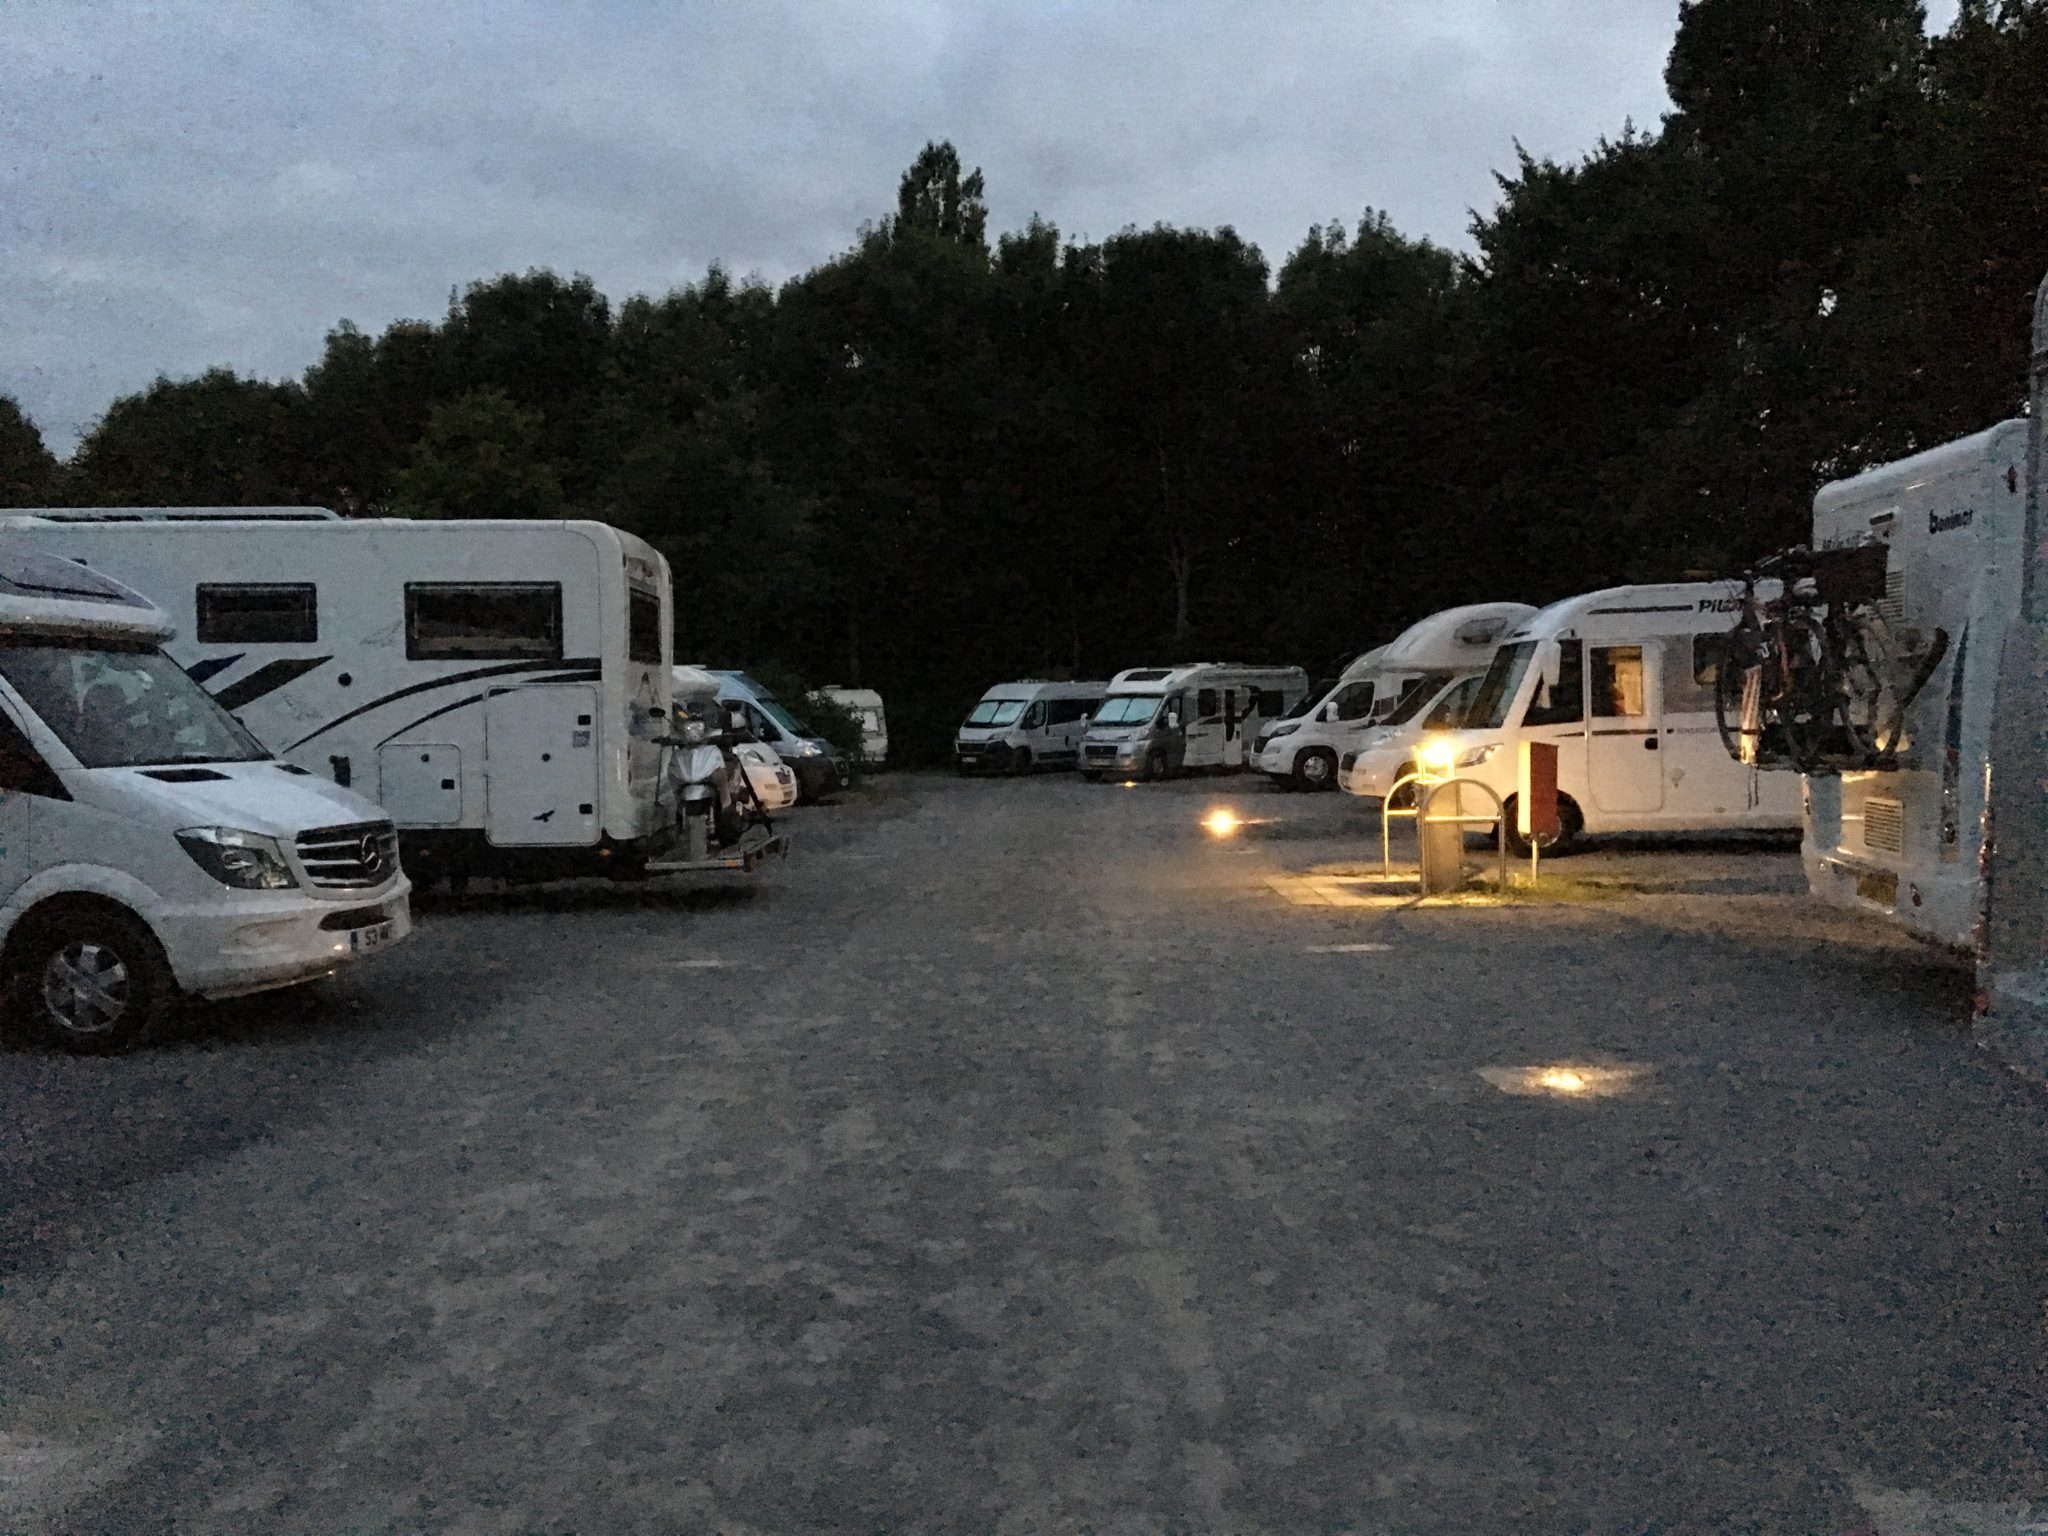 Motorhomes at campsite in Aachen 2017